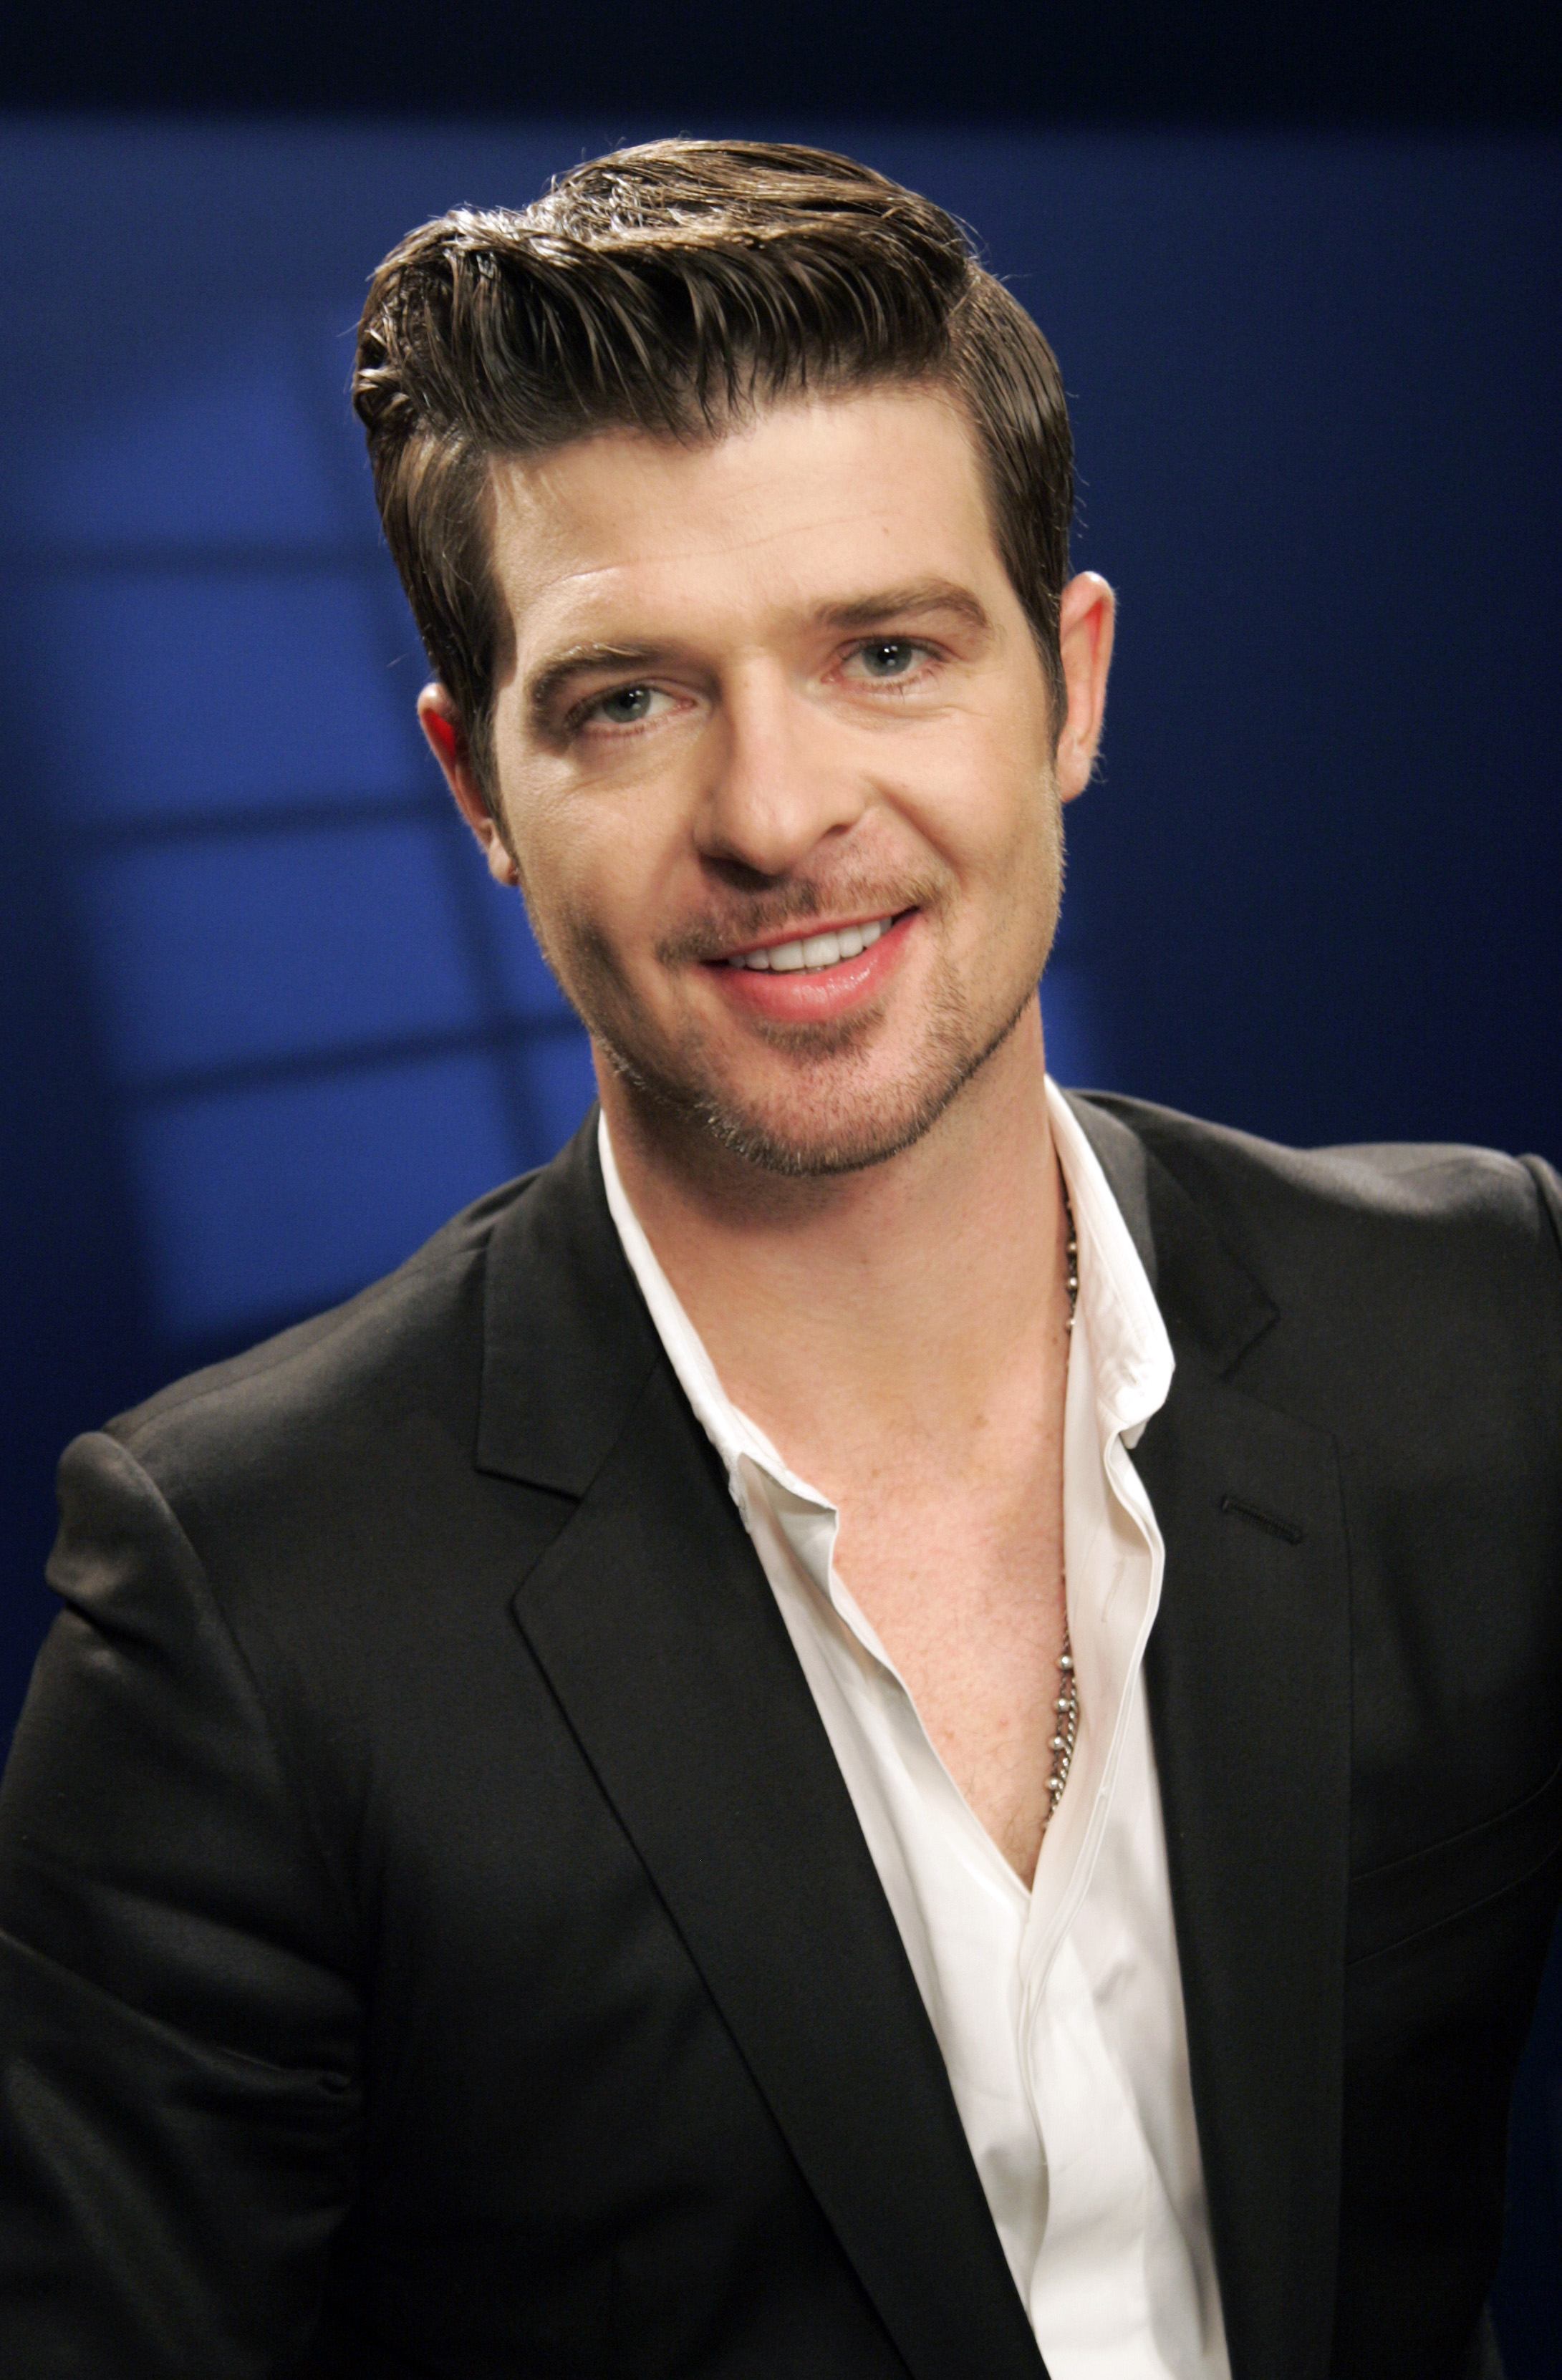 Recording artist Robin Thicke poses for a portrait in New York, New York on Dec. 15.